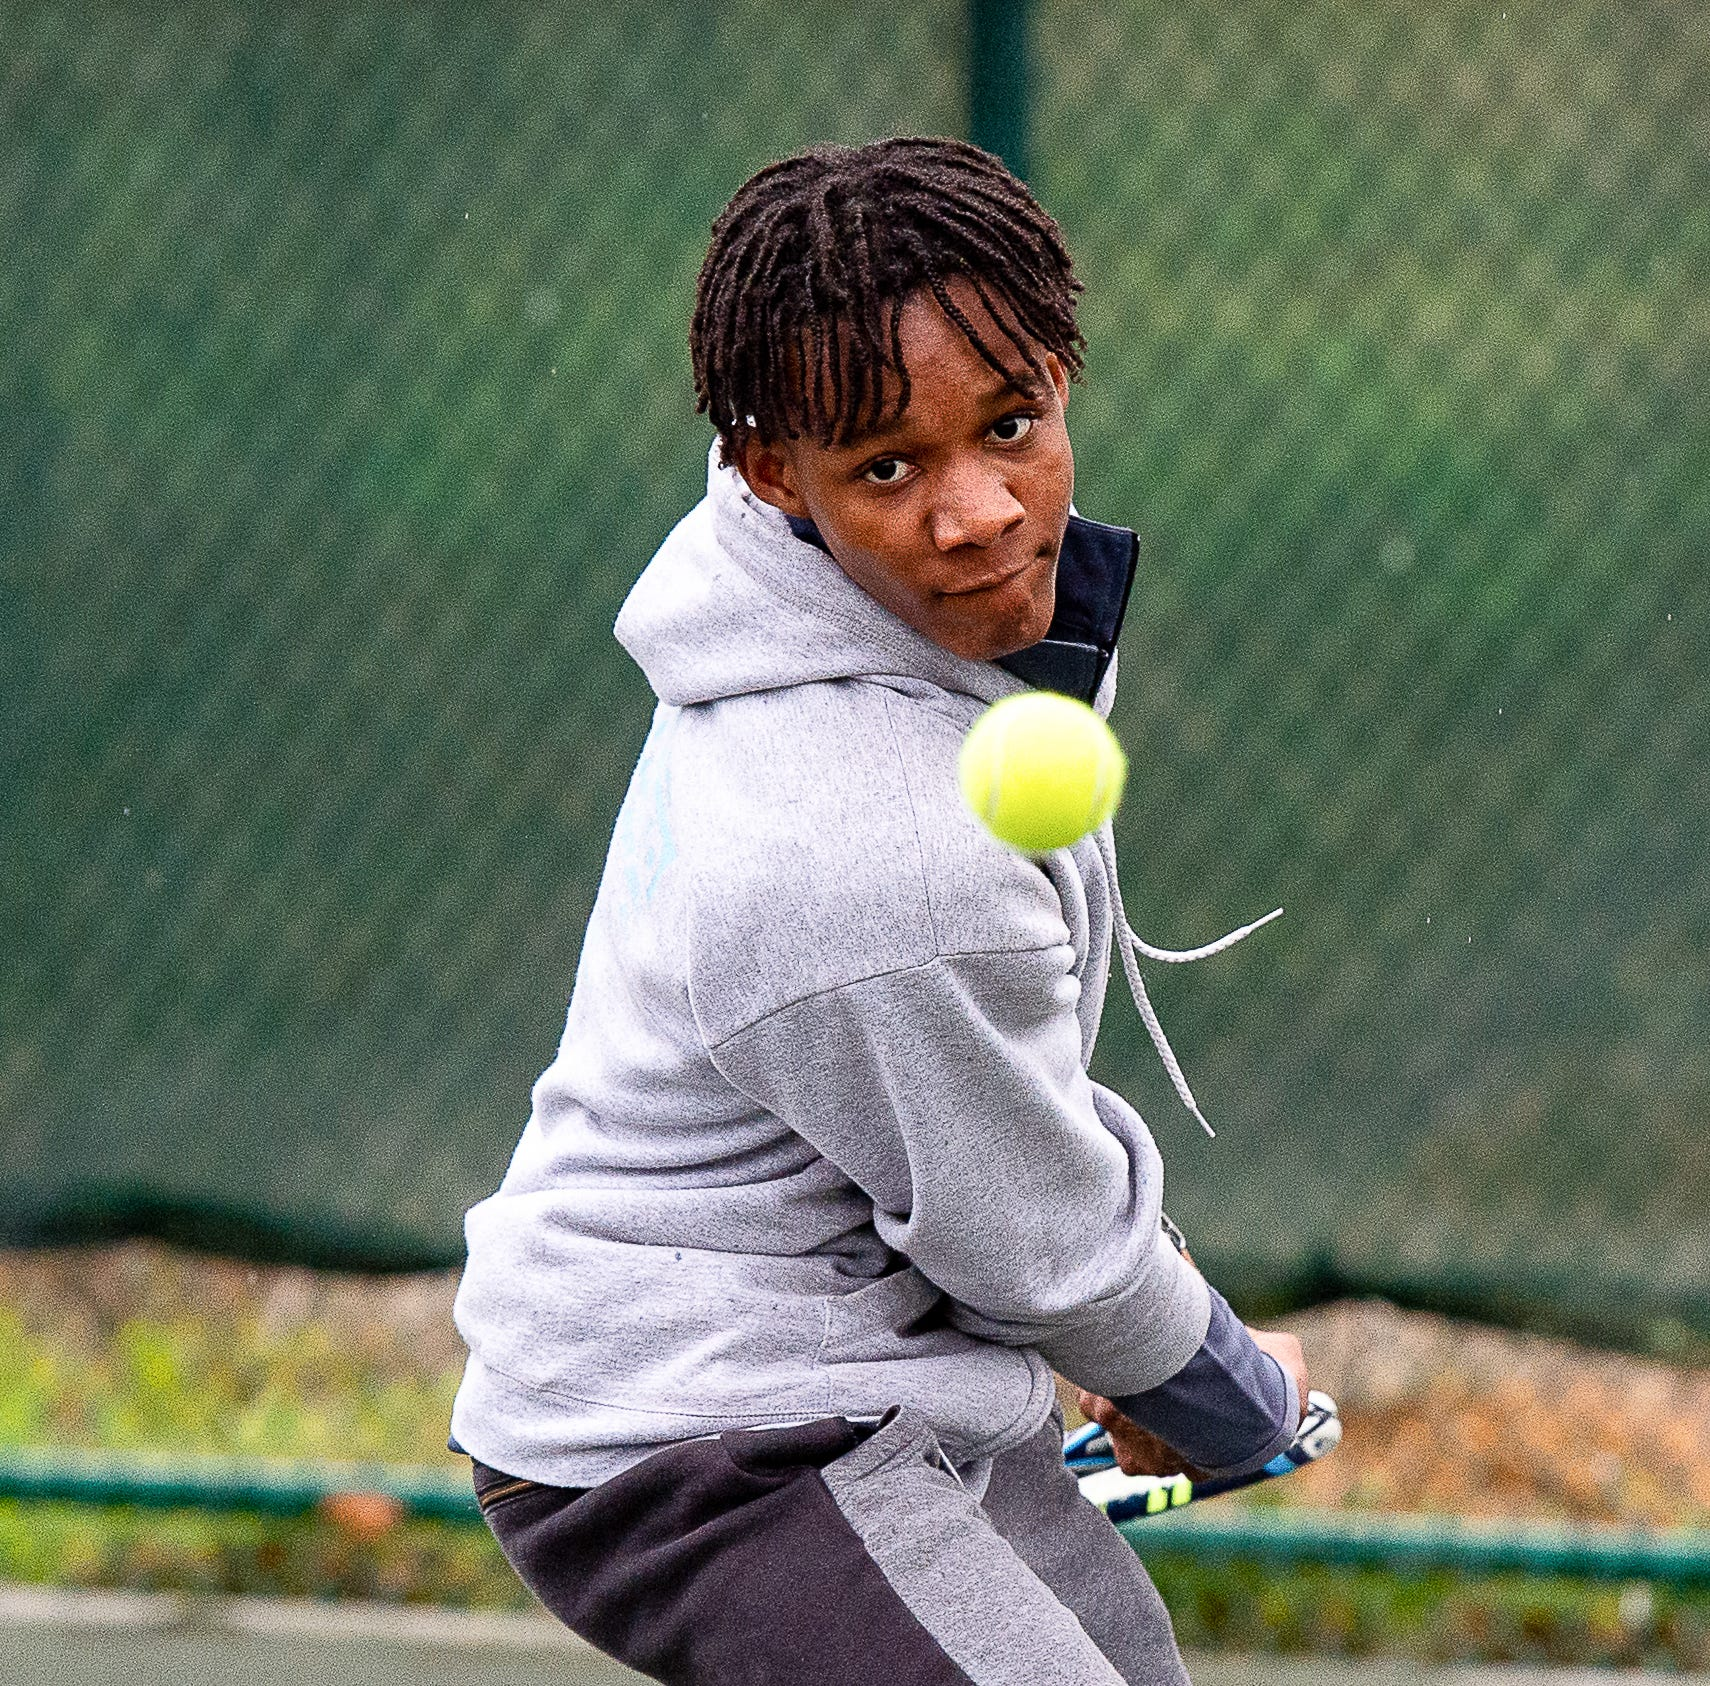 Lafayette teen from Haiti is rising tennis star with big dreams